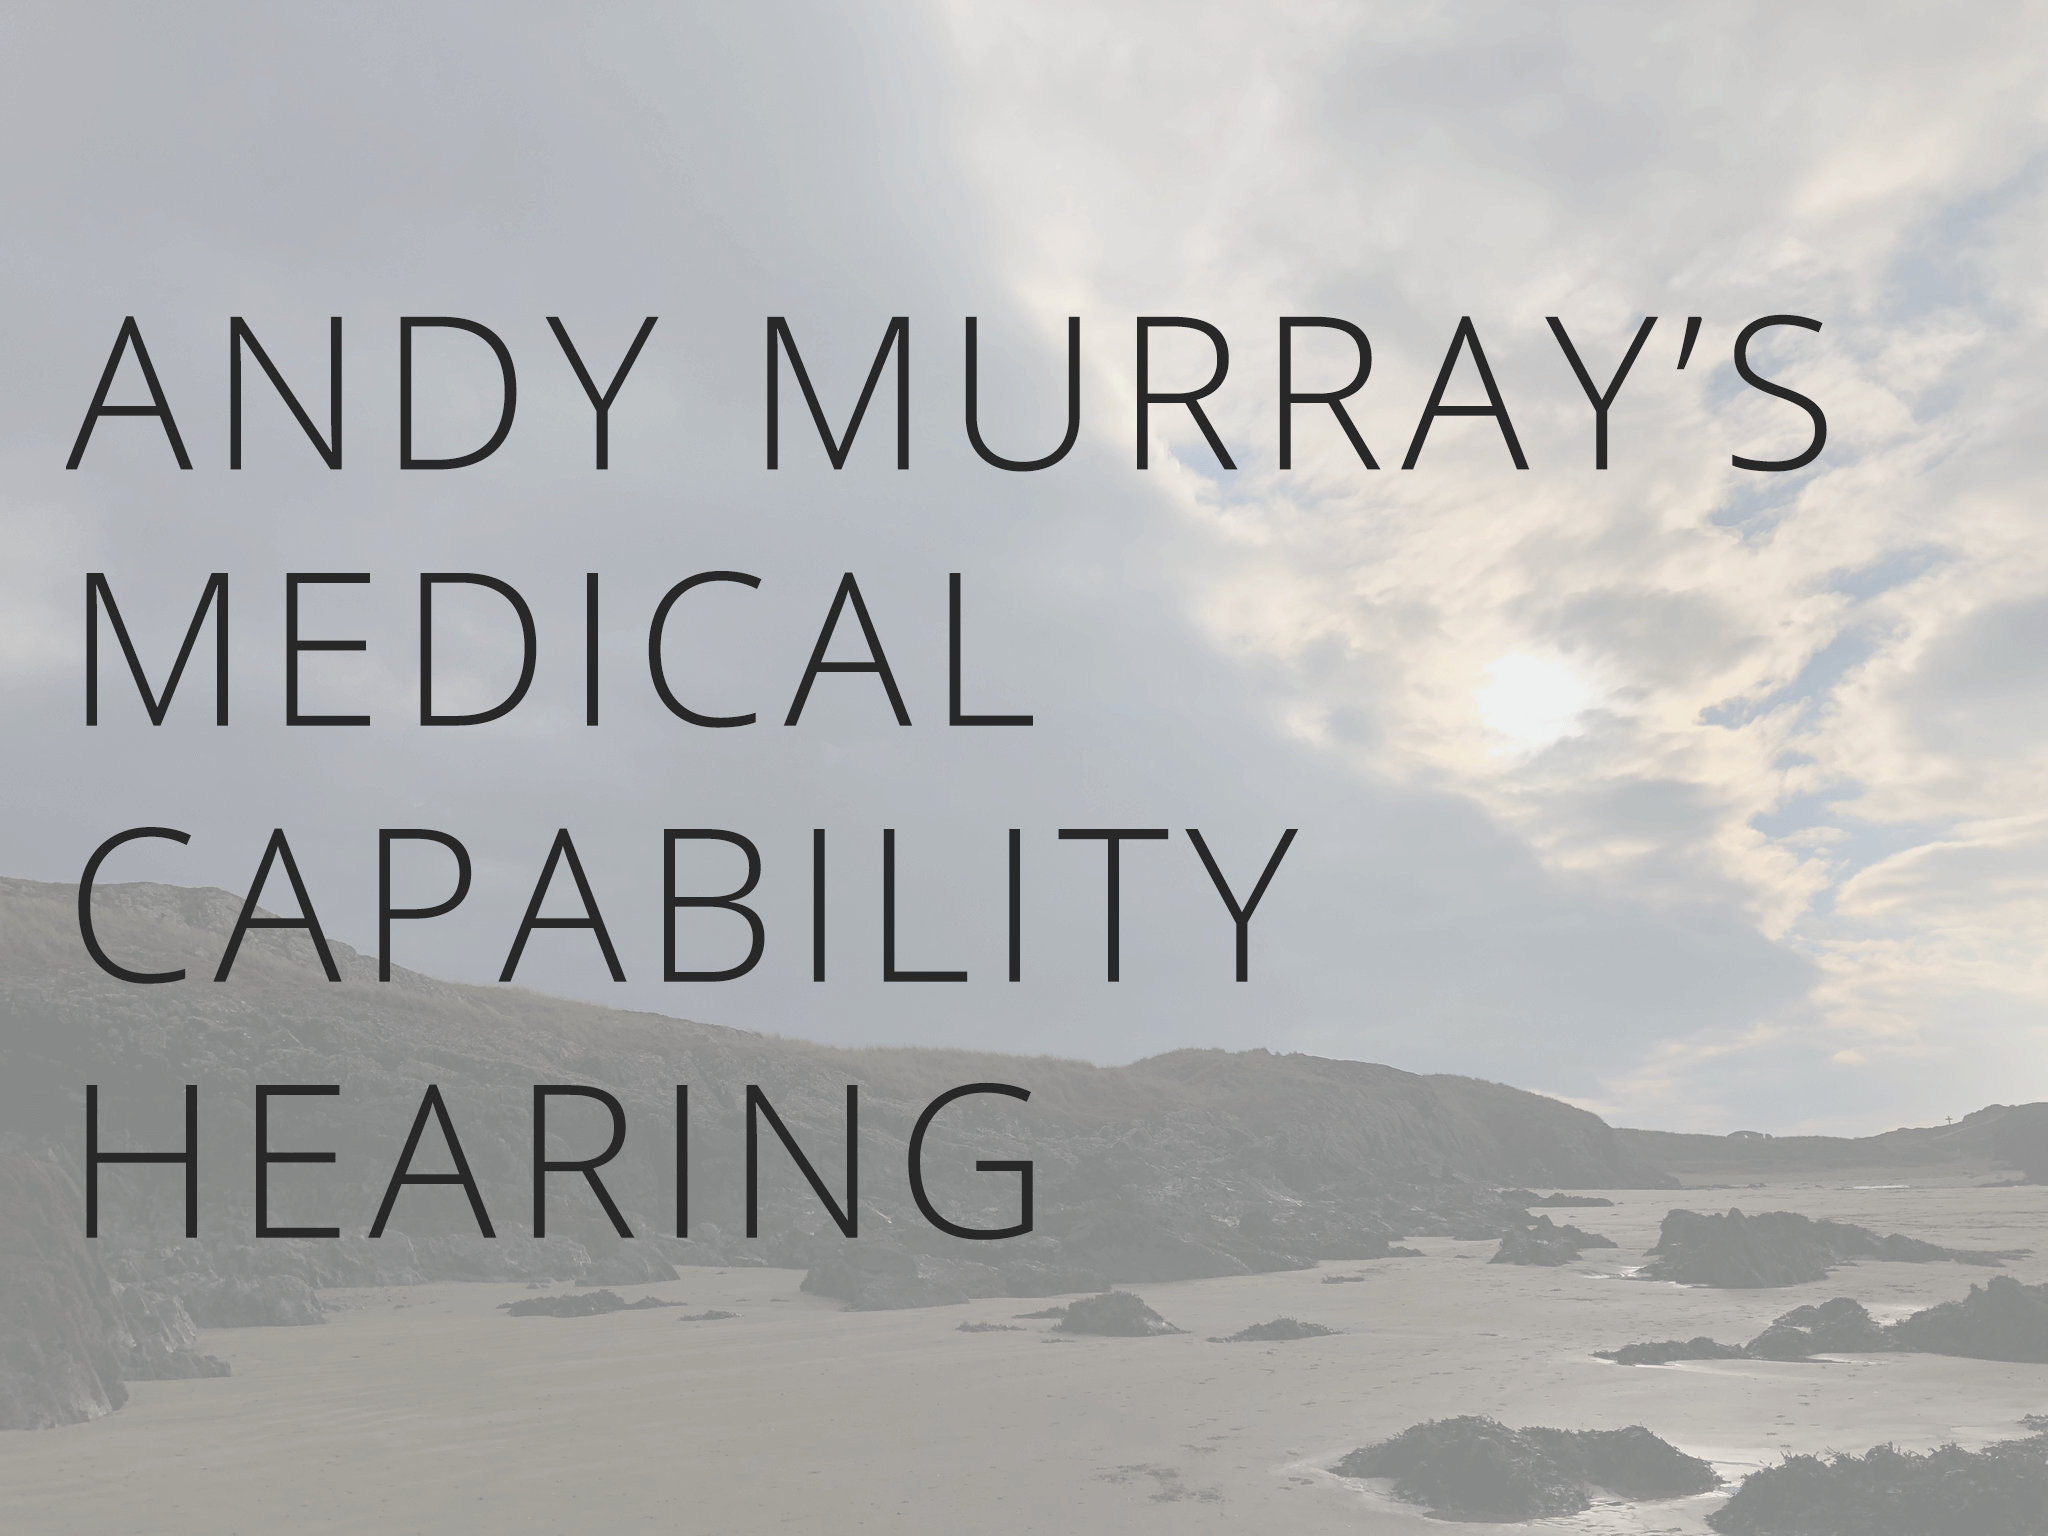 Andy Murray's Medical Capability Hearing